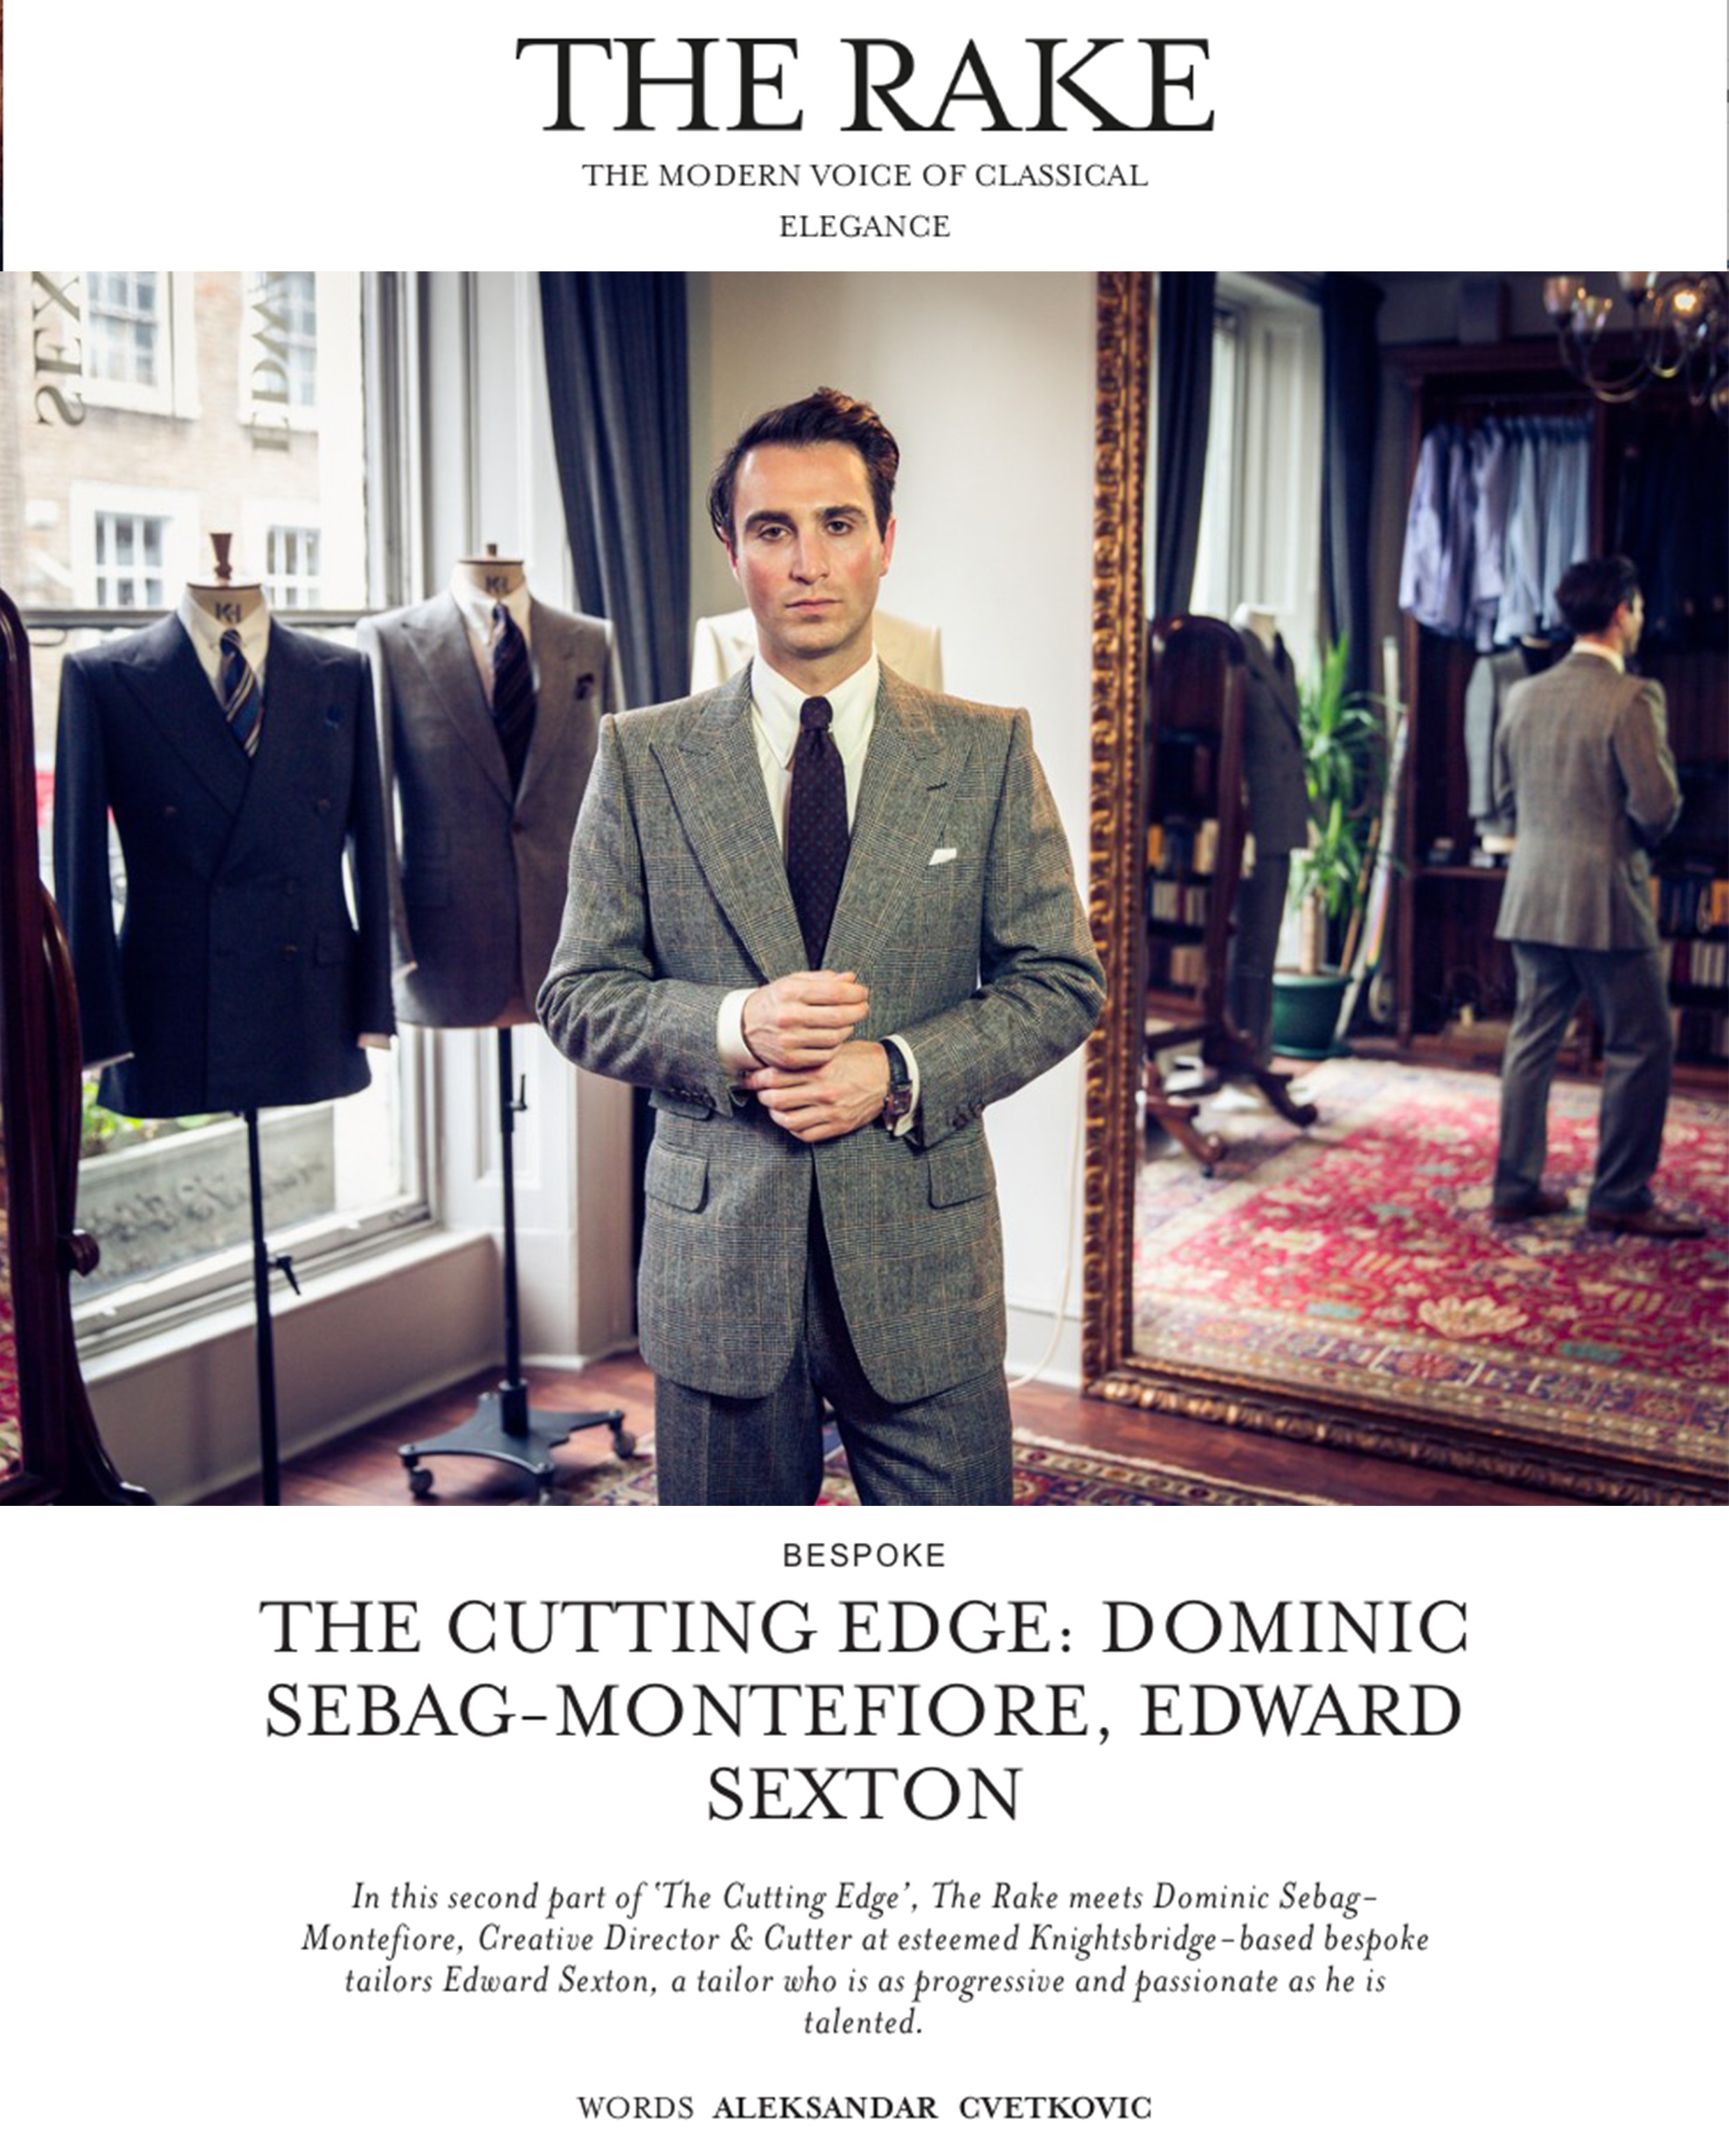 The Rake: The Cutting Edge, Dominic Sebag-Montefiore